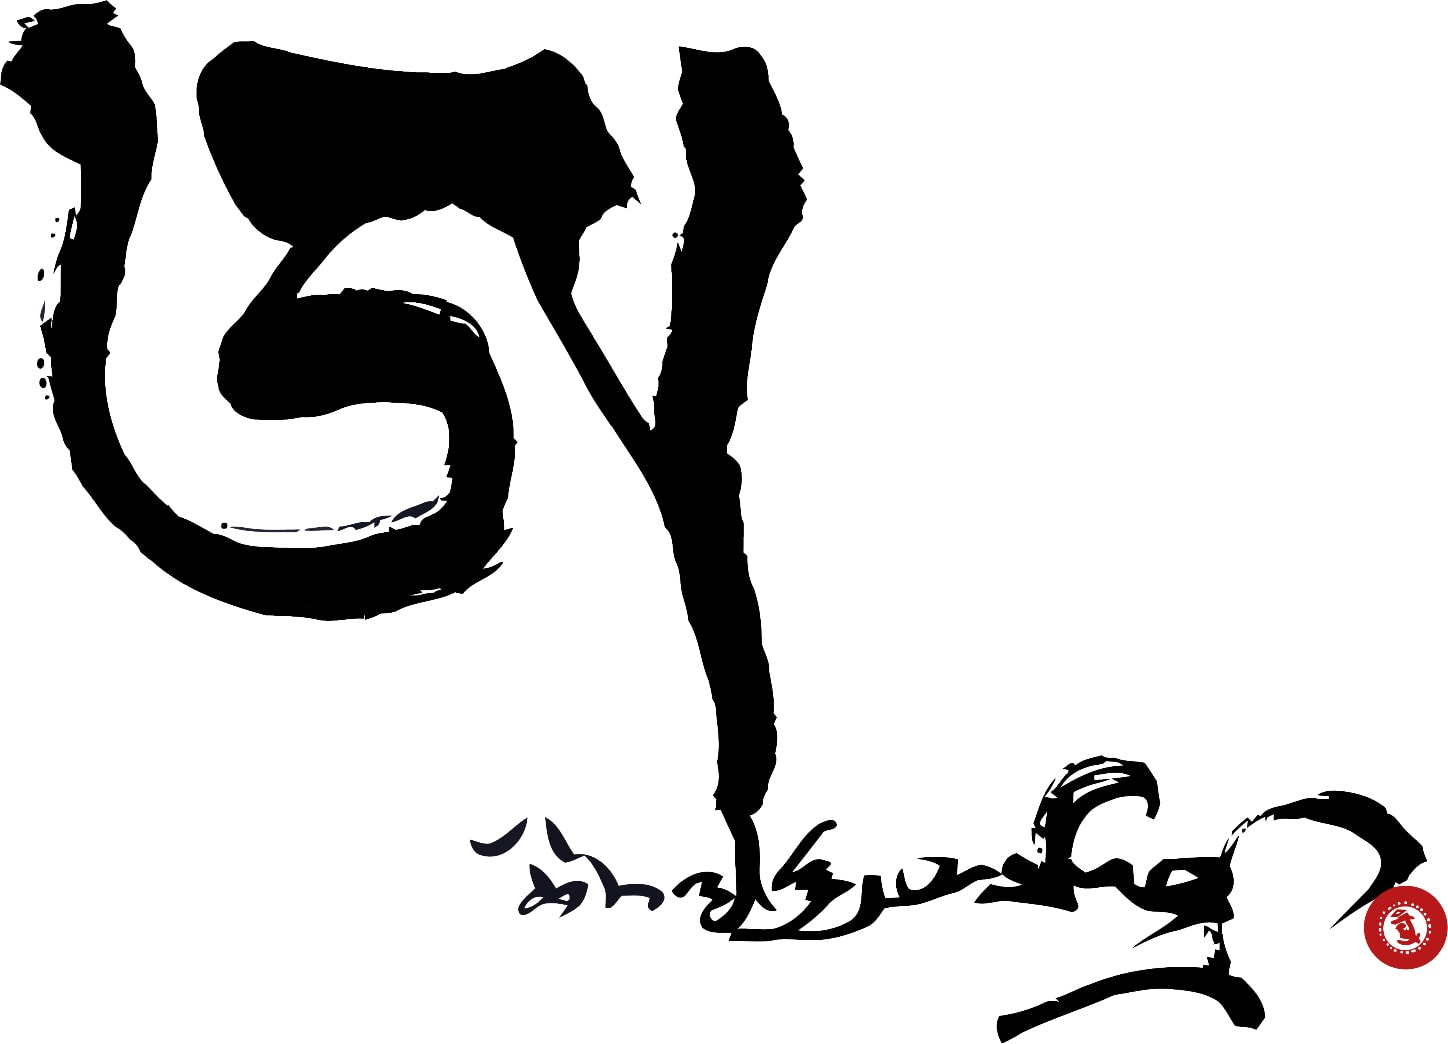 Mikey dorje   michal the girl vajra sister   a  calligraphy by ch gyam trungpa 1511640415